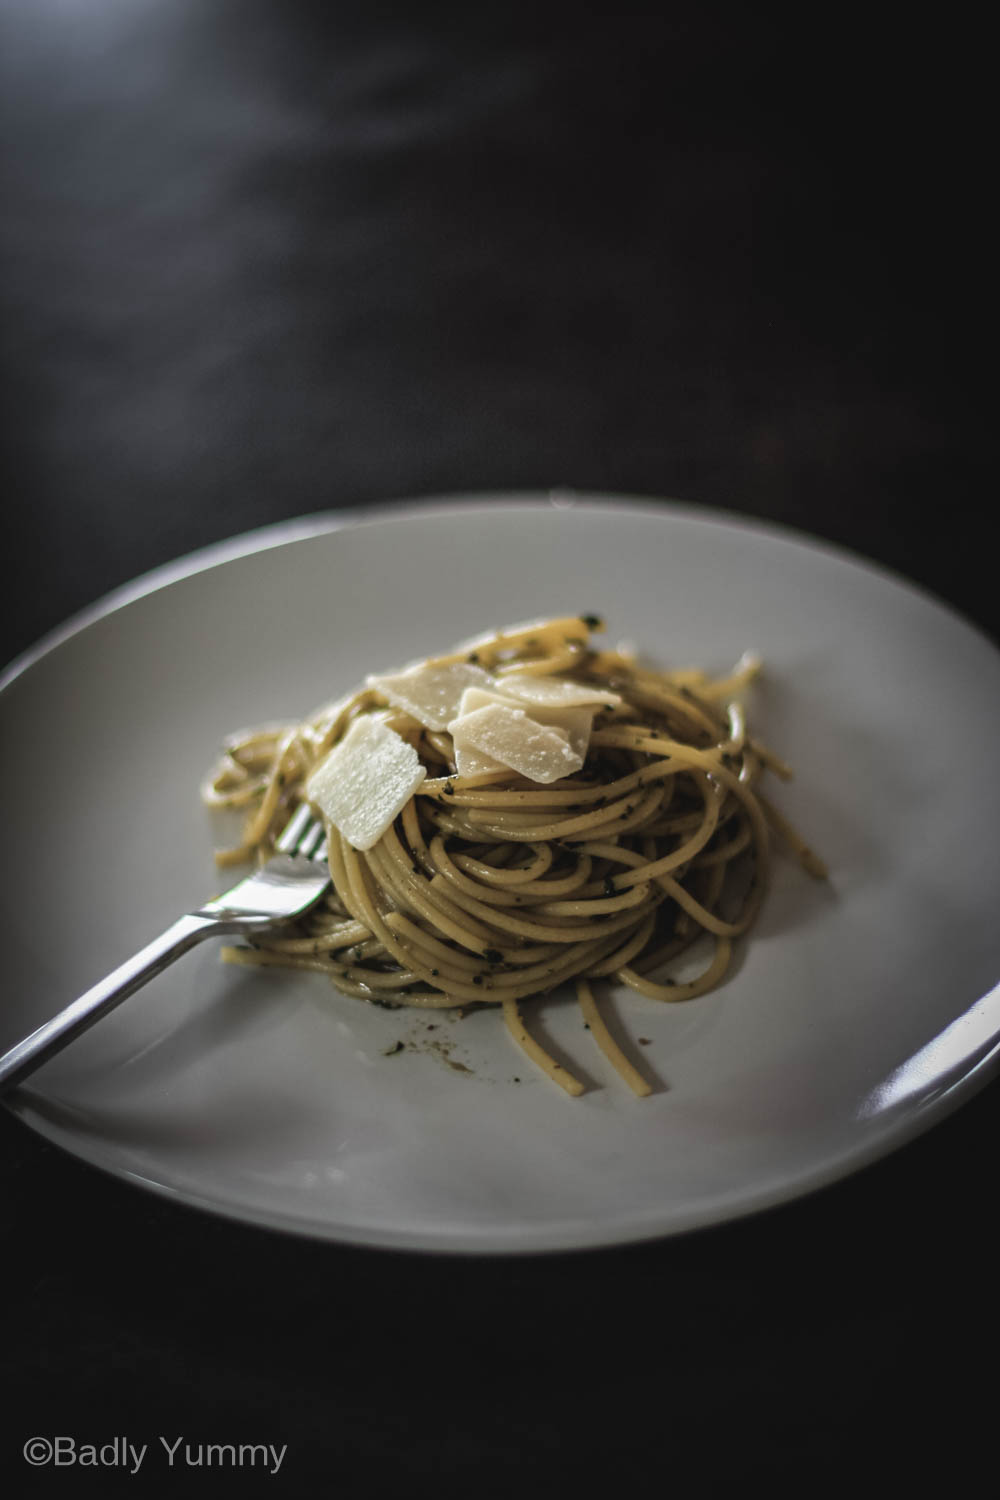 Spaghetti with a lot of juicy pesto sauce, ready to be eaten